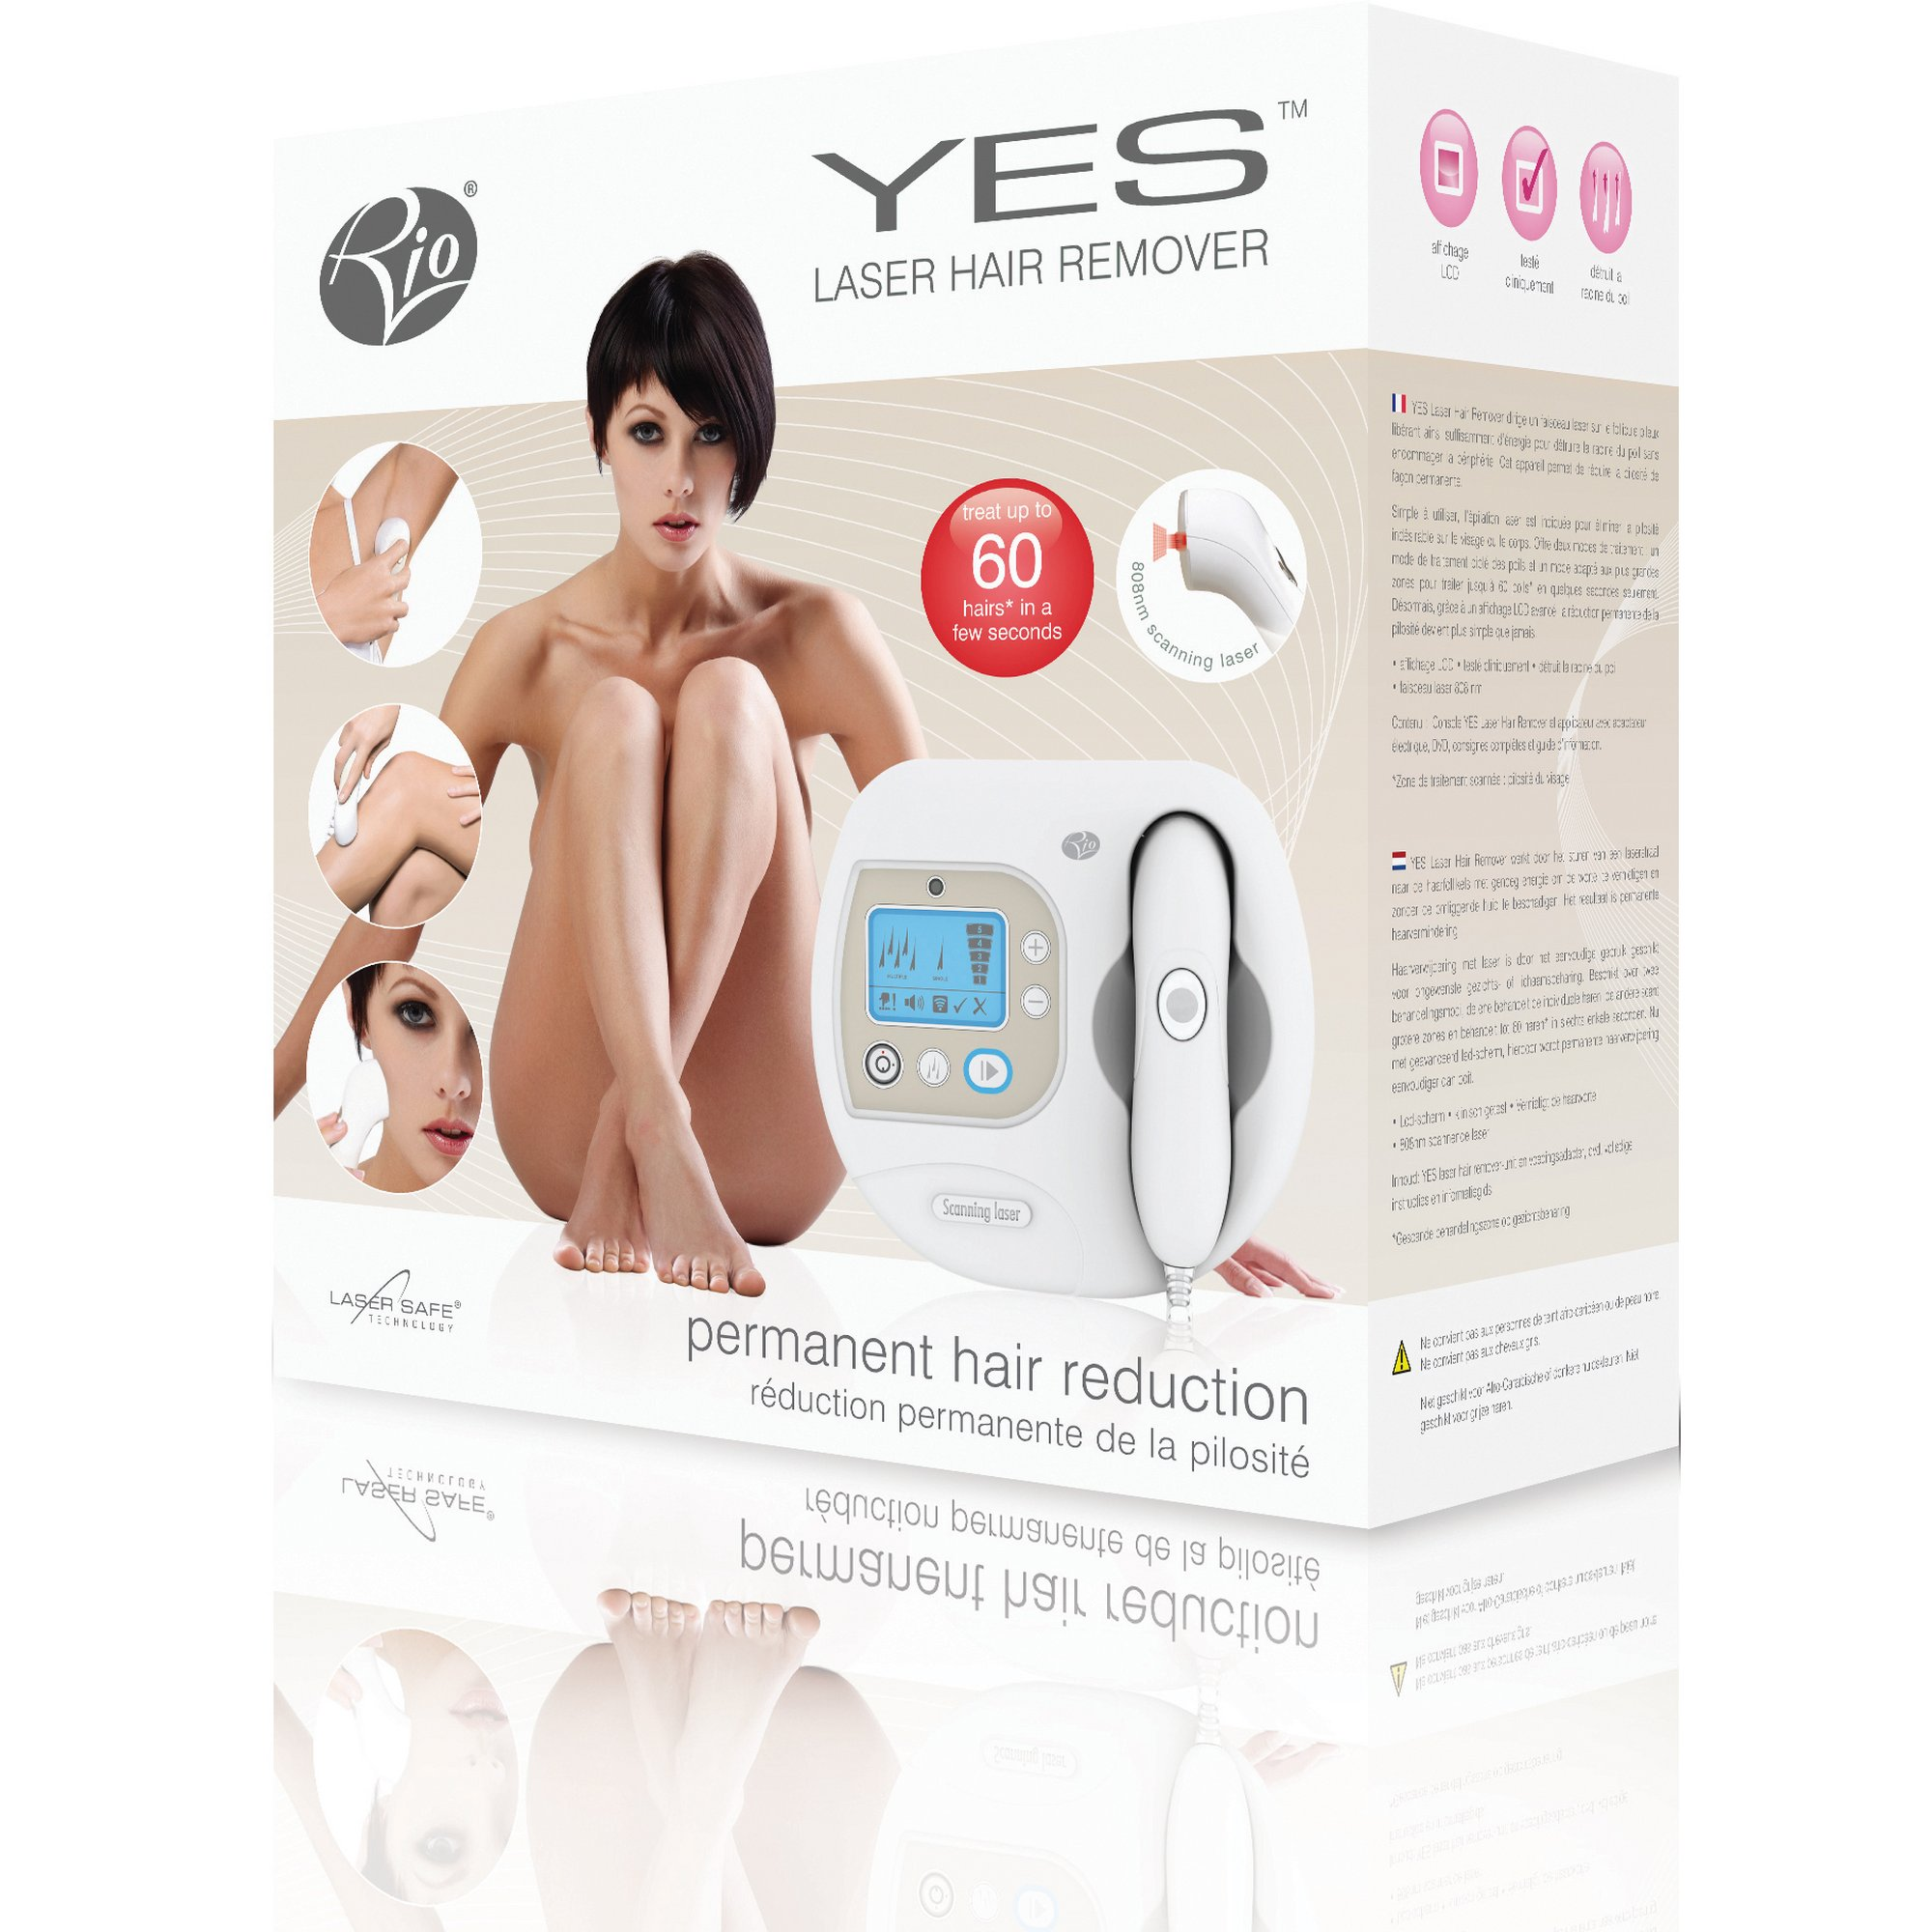 Image of Rio - YES Laser Hair Remover